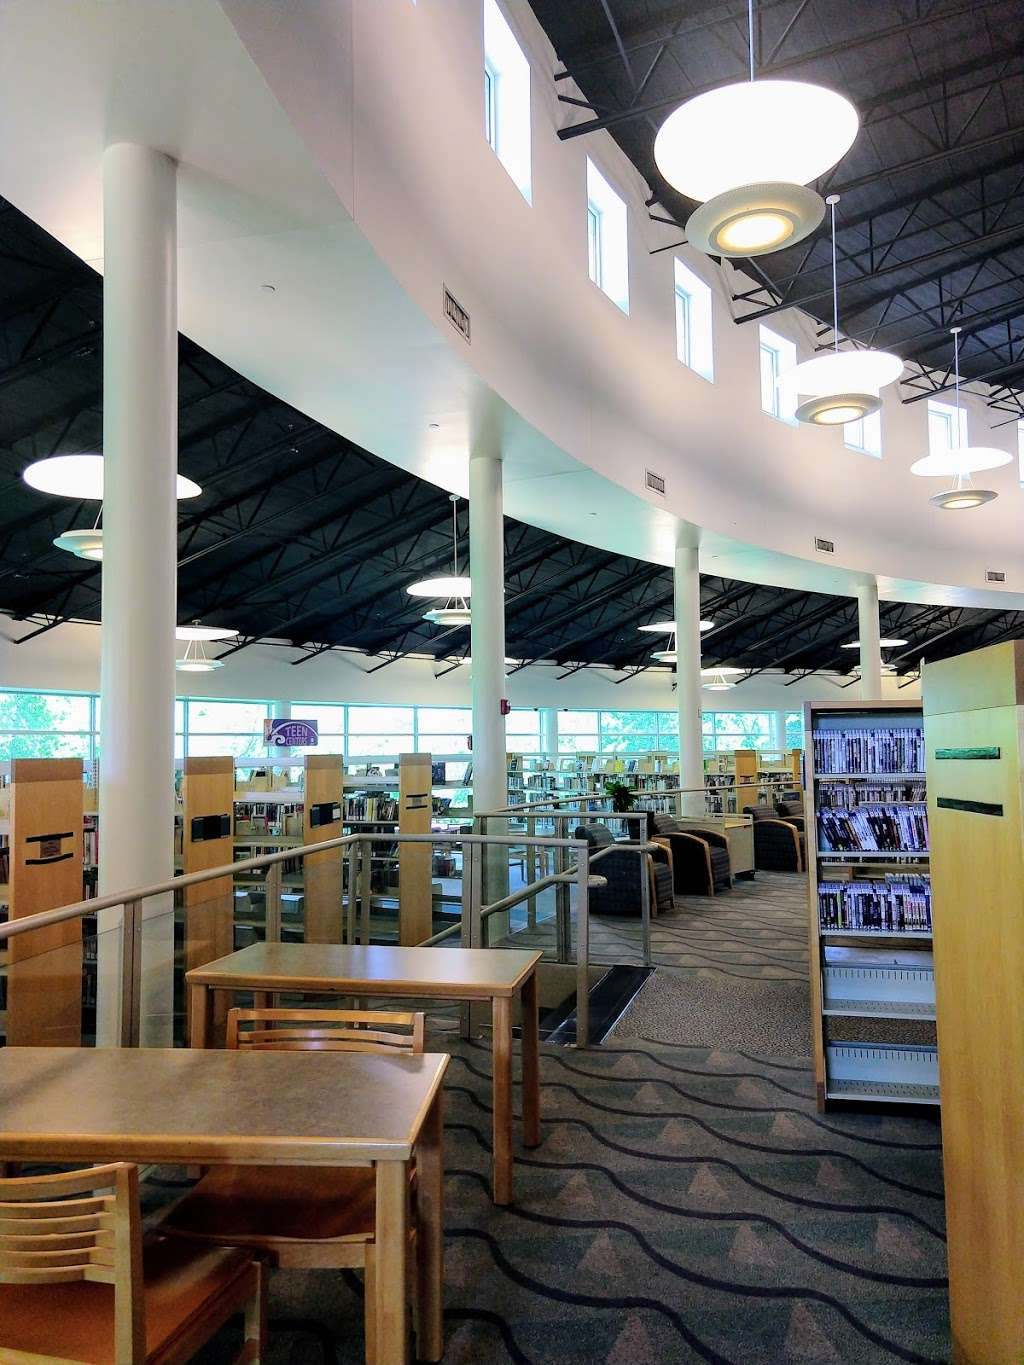 Arcadia Park Branch Library - library  | Photo 2 of 9 | Address: 1302 N Justin Ave, Dallas, TX 75211, USA | Phone: (214) 670-6446